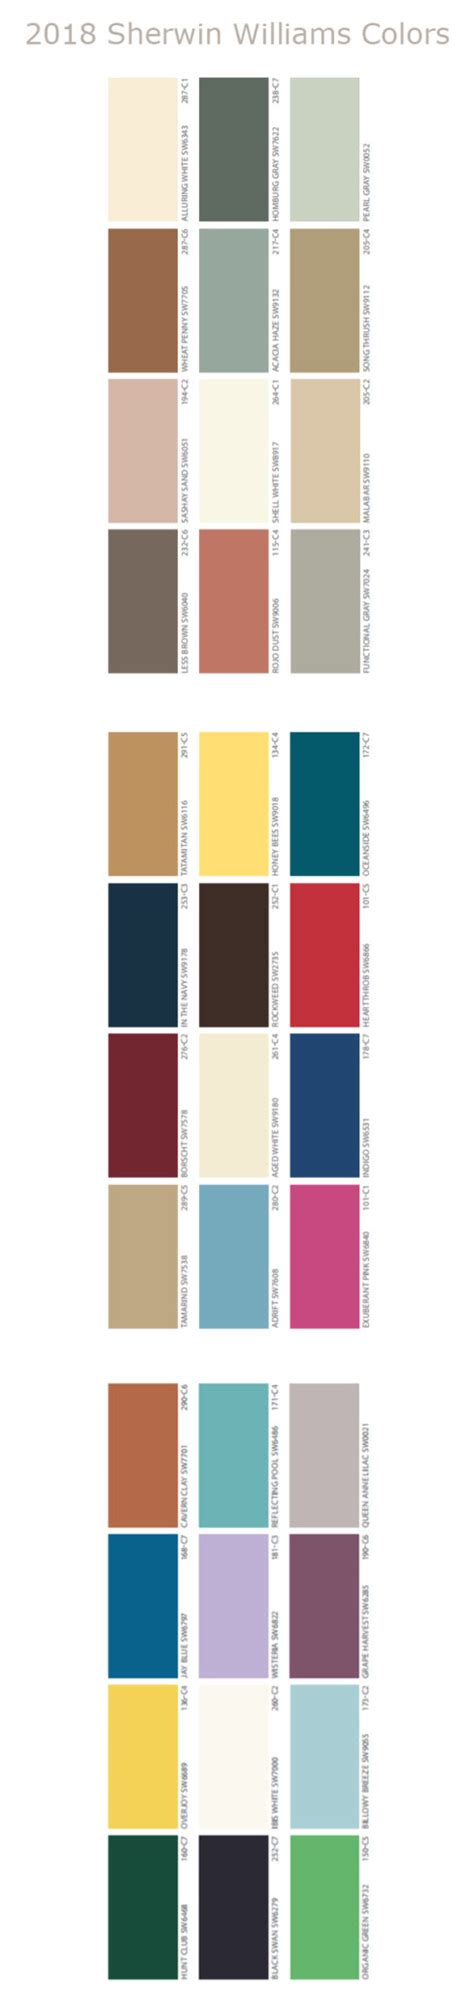 sherwin williams 2017 colors 28 paint color trends 2017 sherwin williams